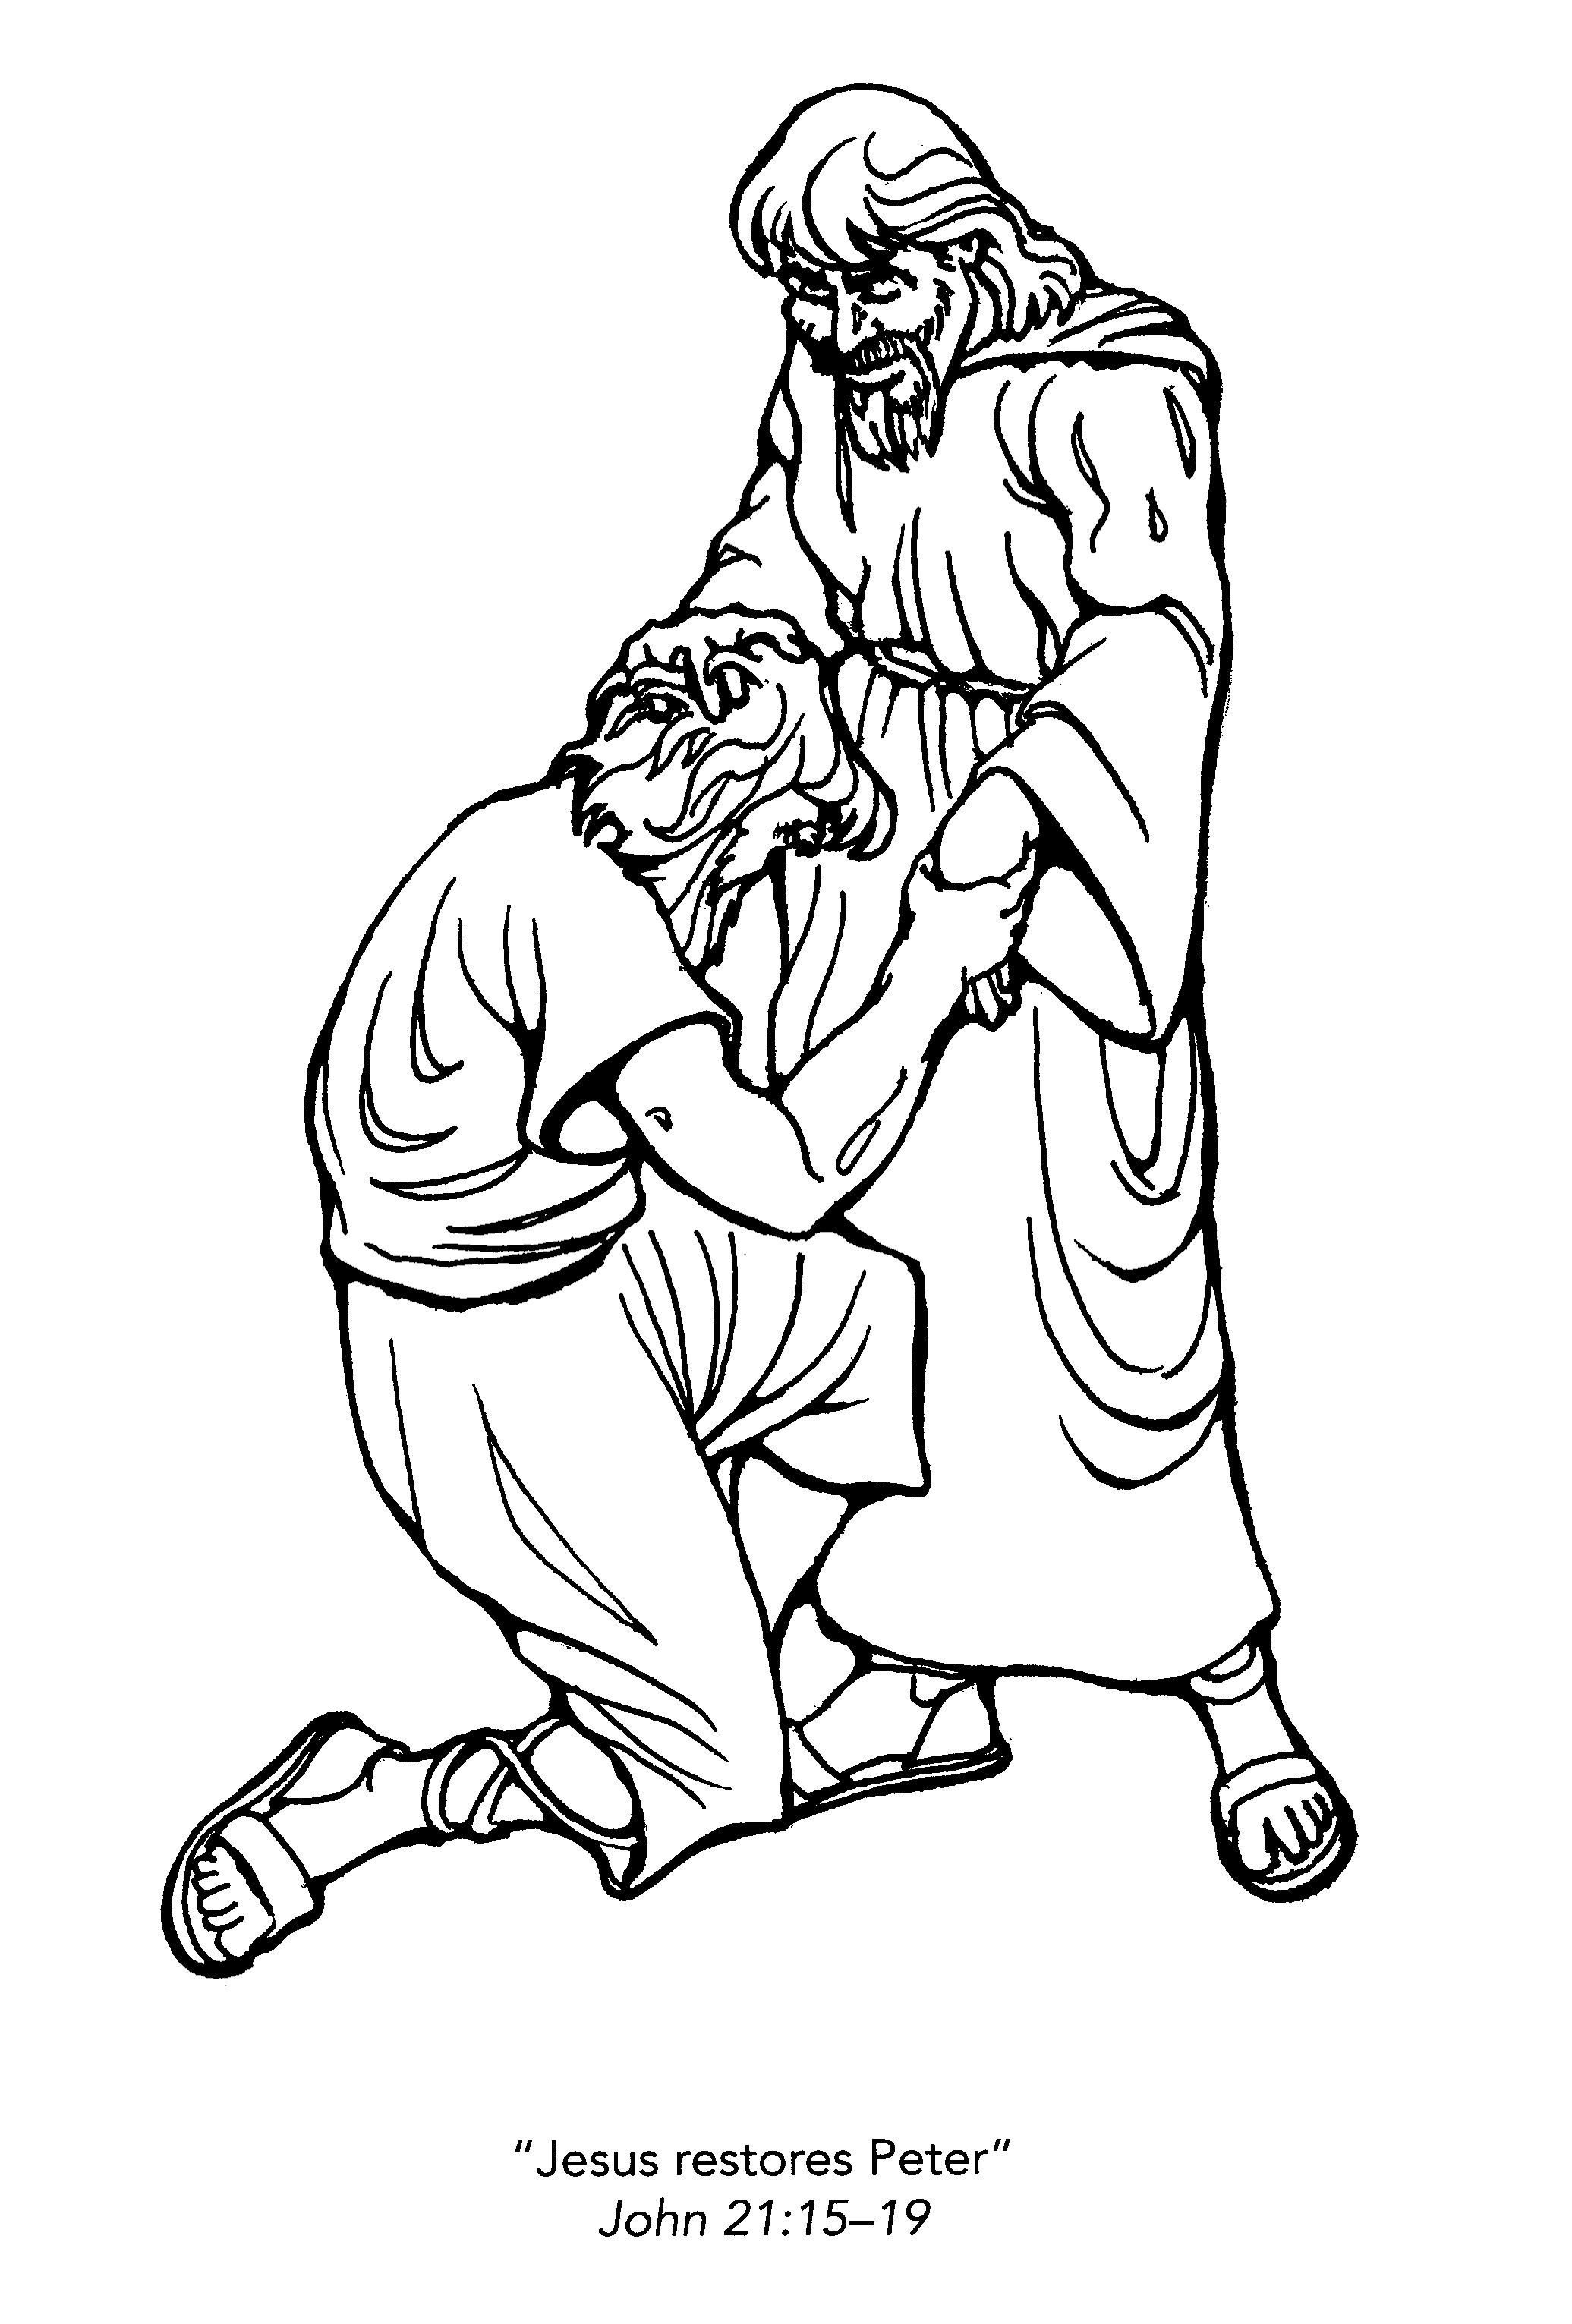 Free Christian Coloring Pages for Kids, Children, and